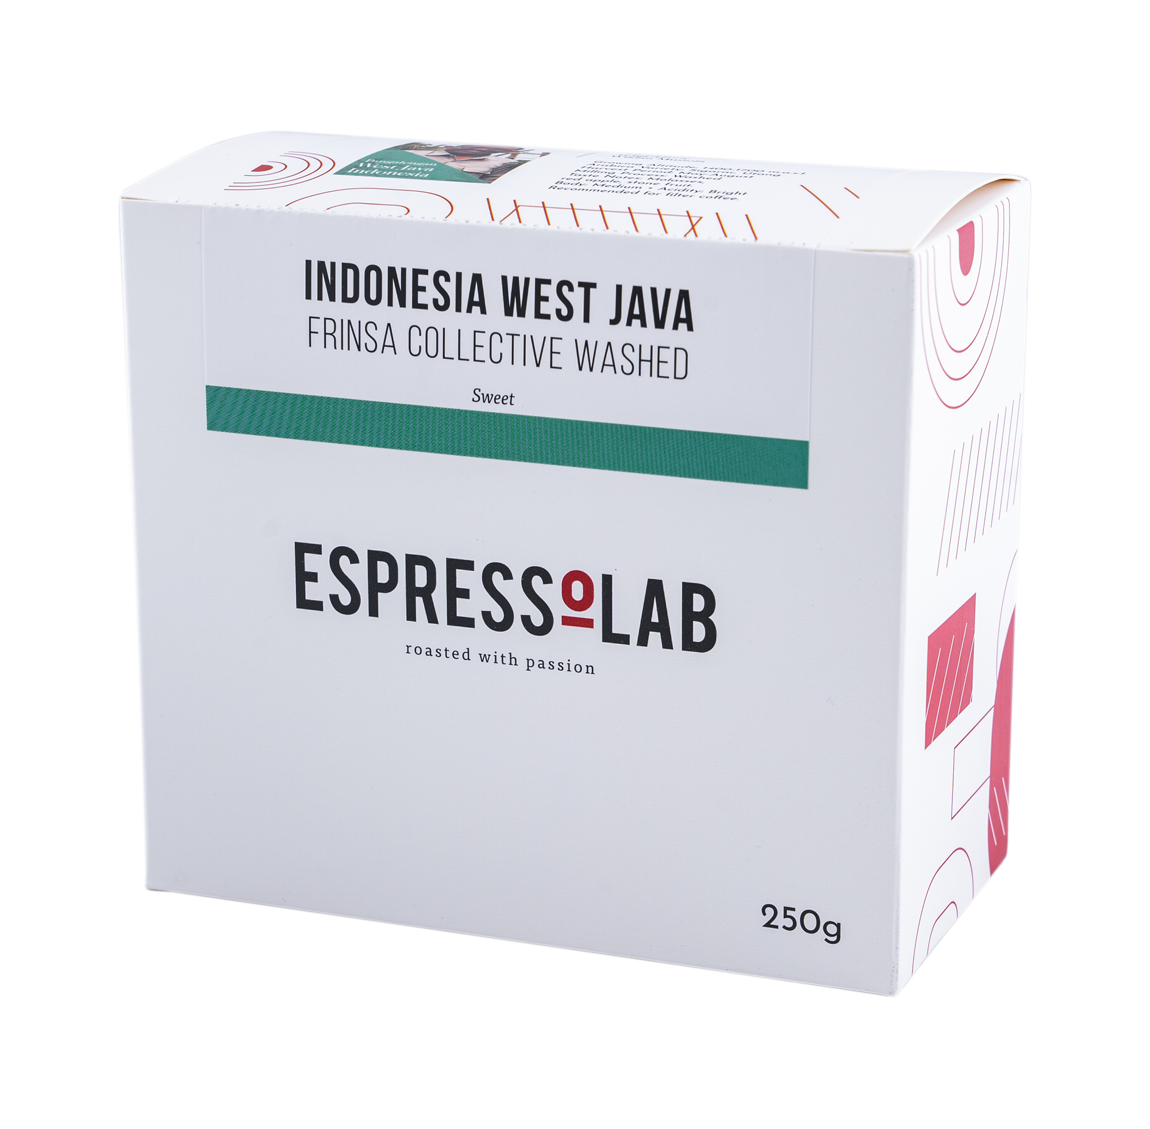 Indonesia West Java Frinsa Collective Washed 250g